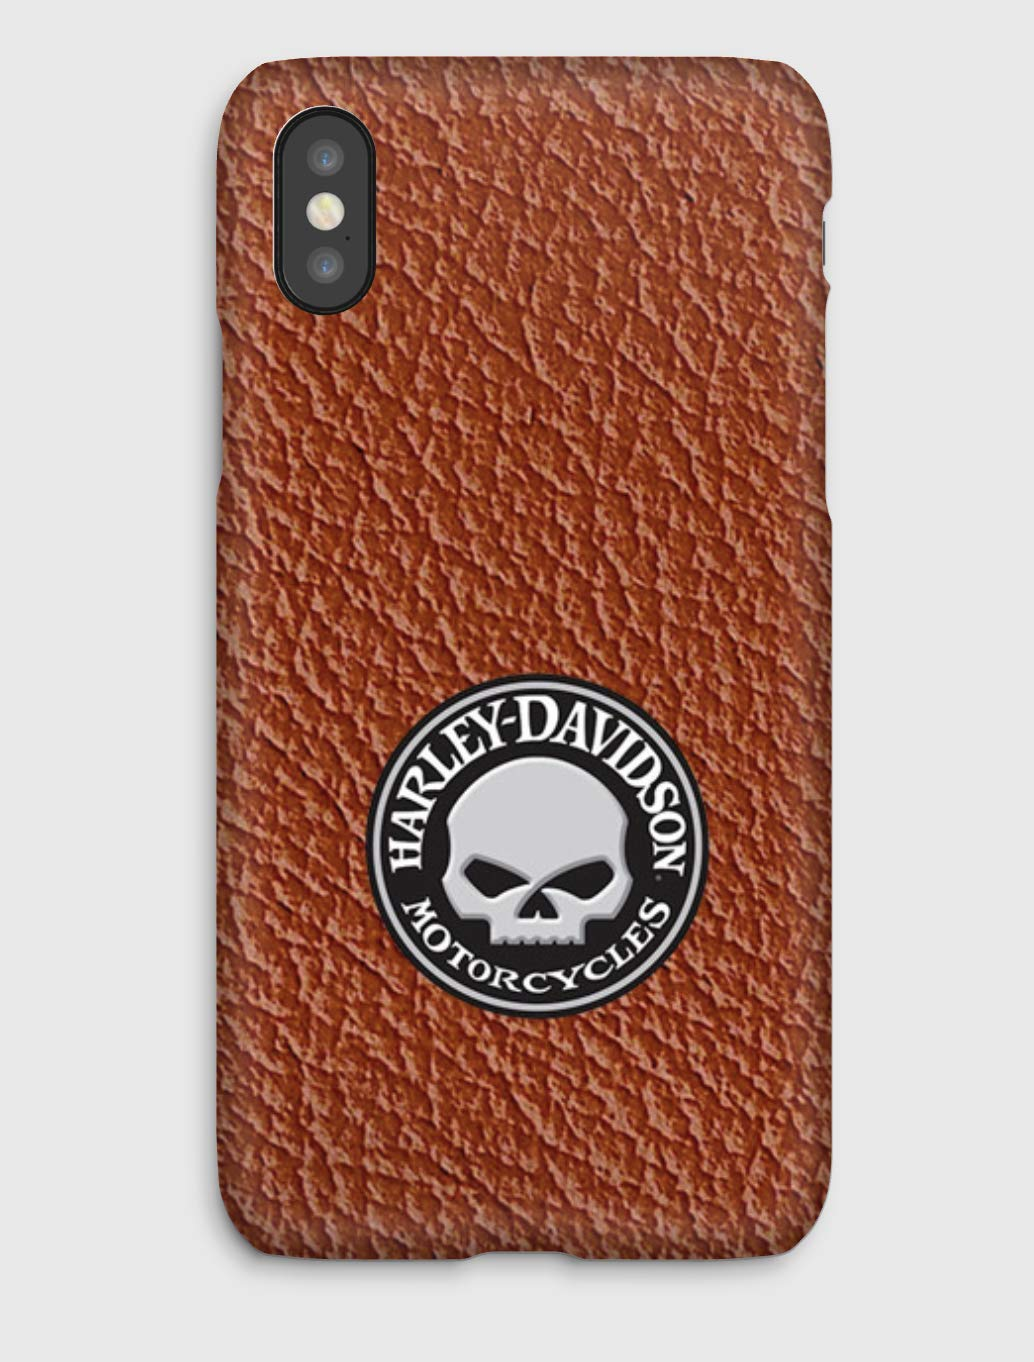 100% Harley Davidson, coque pour iPhone XS, XS Max, XR, X, 8, 8+, 7, 7+, 6S, 6, 6S+, 6+, 5C, 5, 5S, 5SE, 4S, 4,